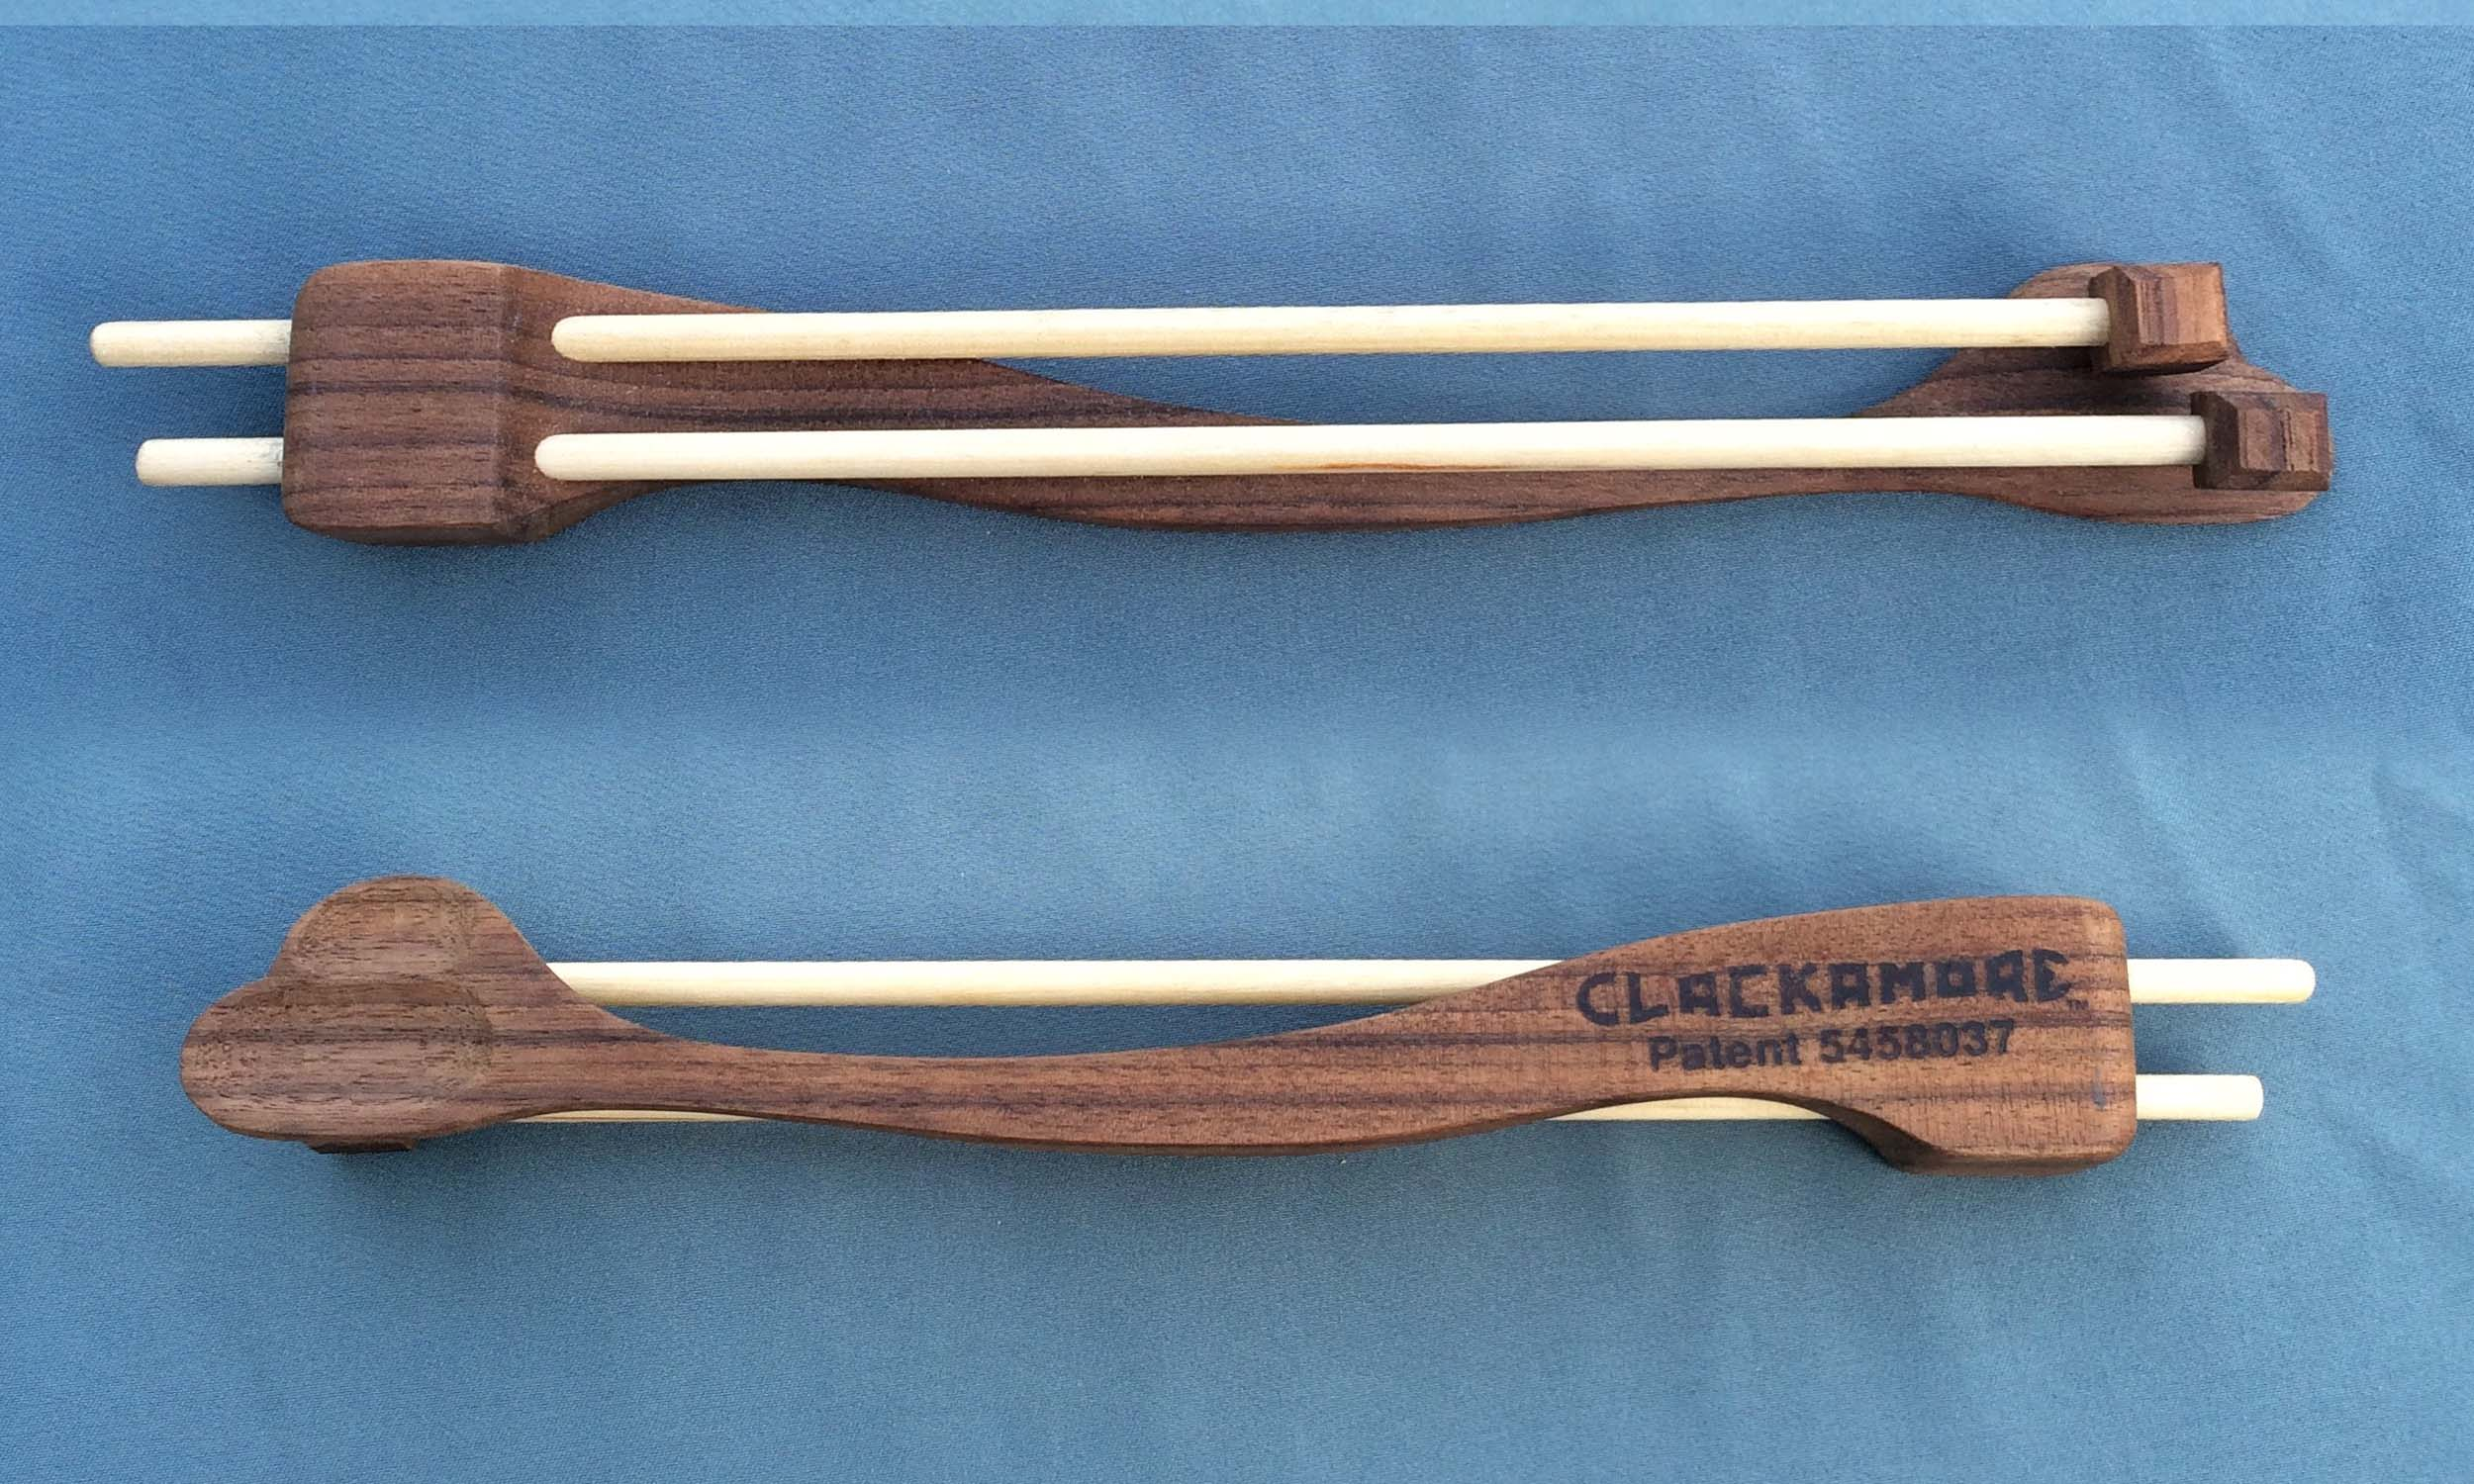 Double . While some success has been realized with double hammer Clackamores none has ever been offered for sale. This Walnut wood model has two spoon cuts and does make slightly different tones with the two hammers.